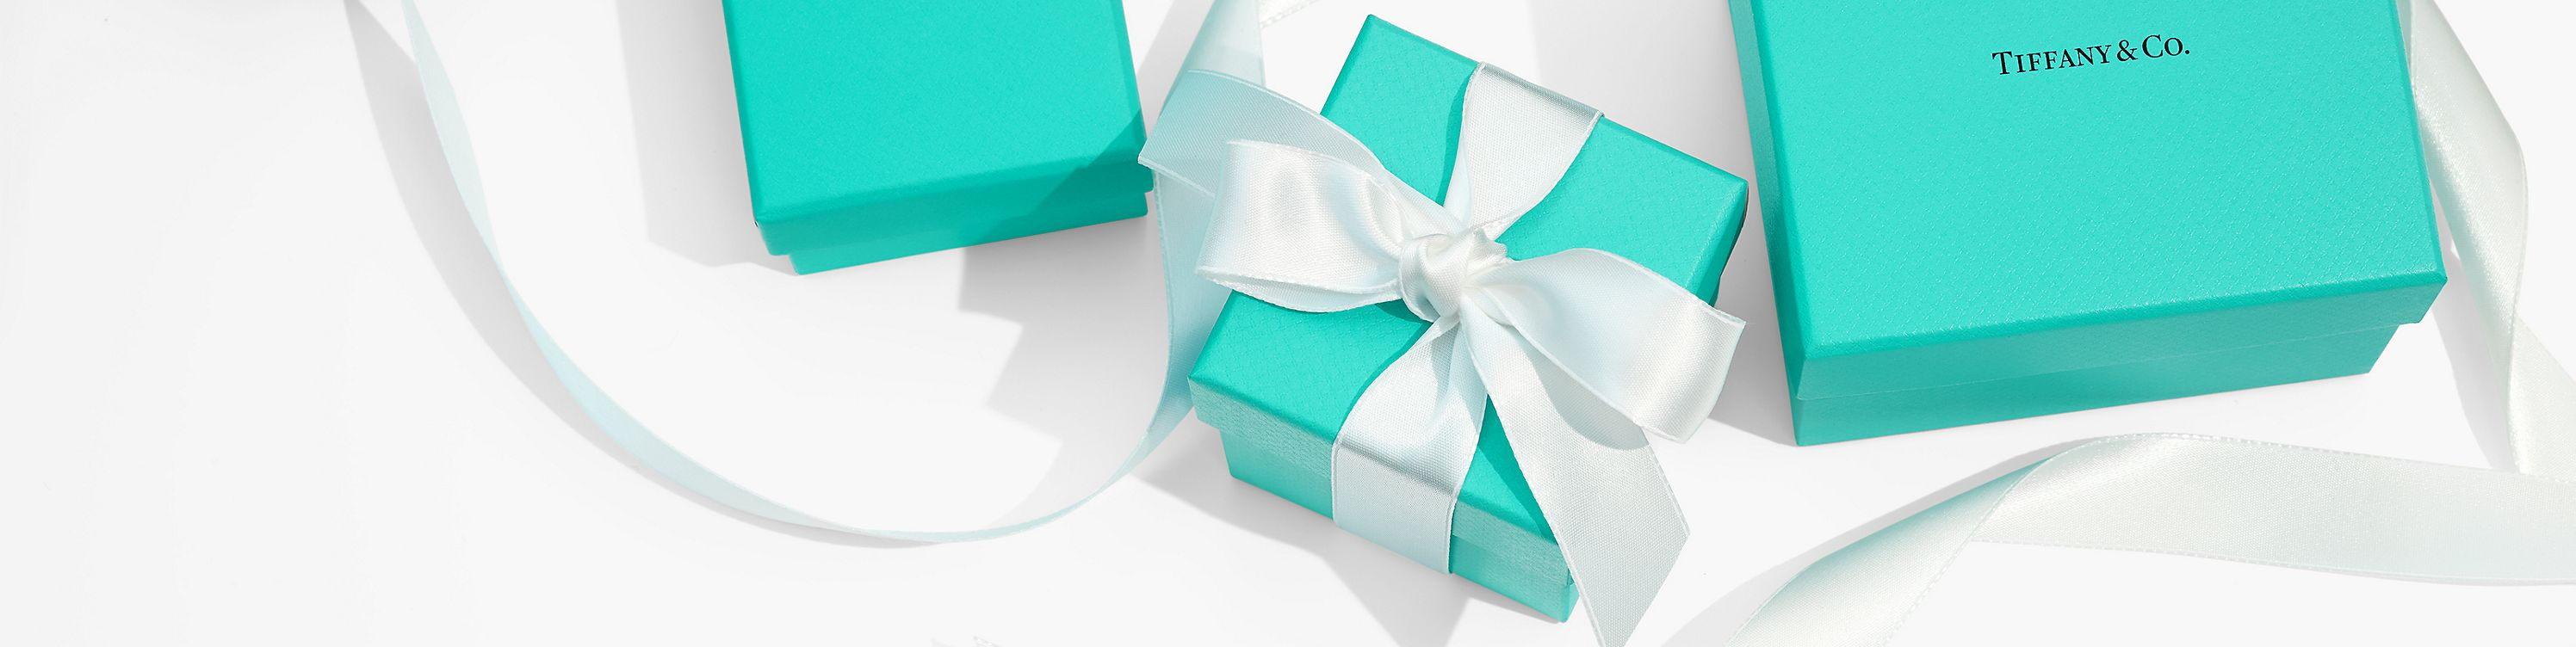 Tiffany & Co. Gifts Under £150